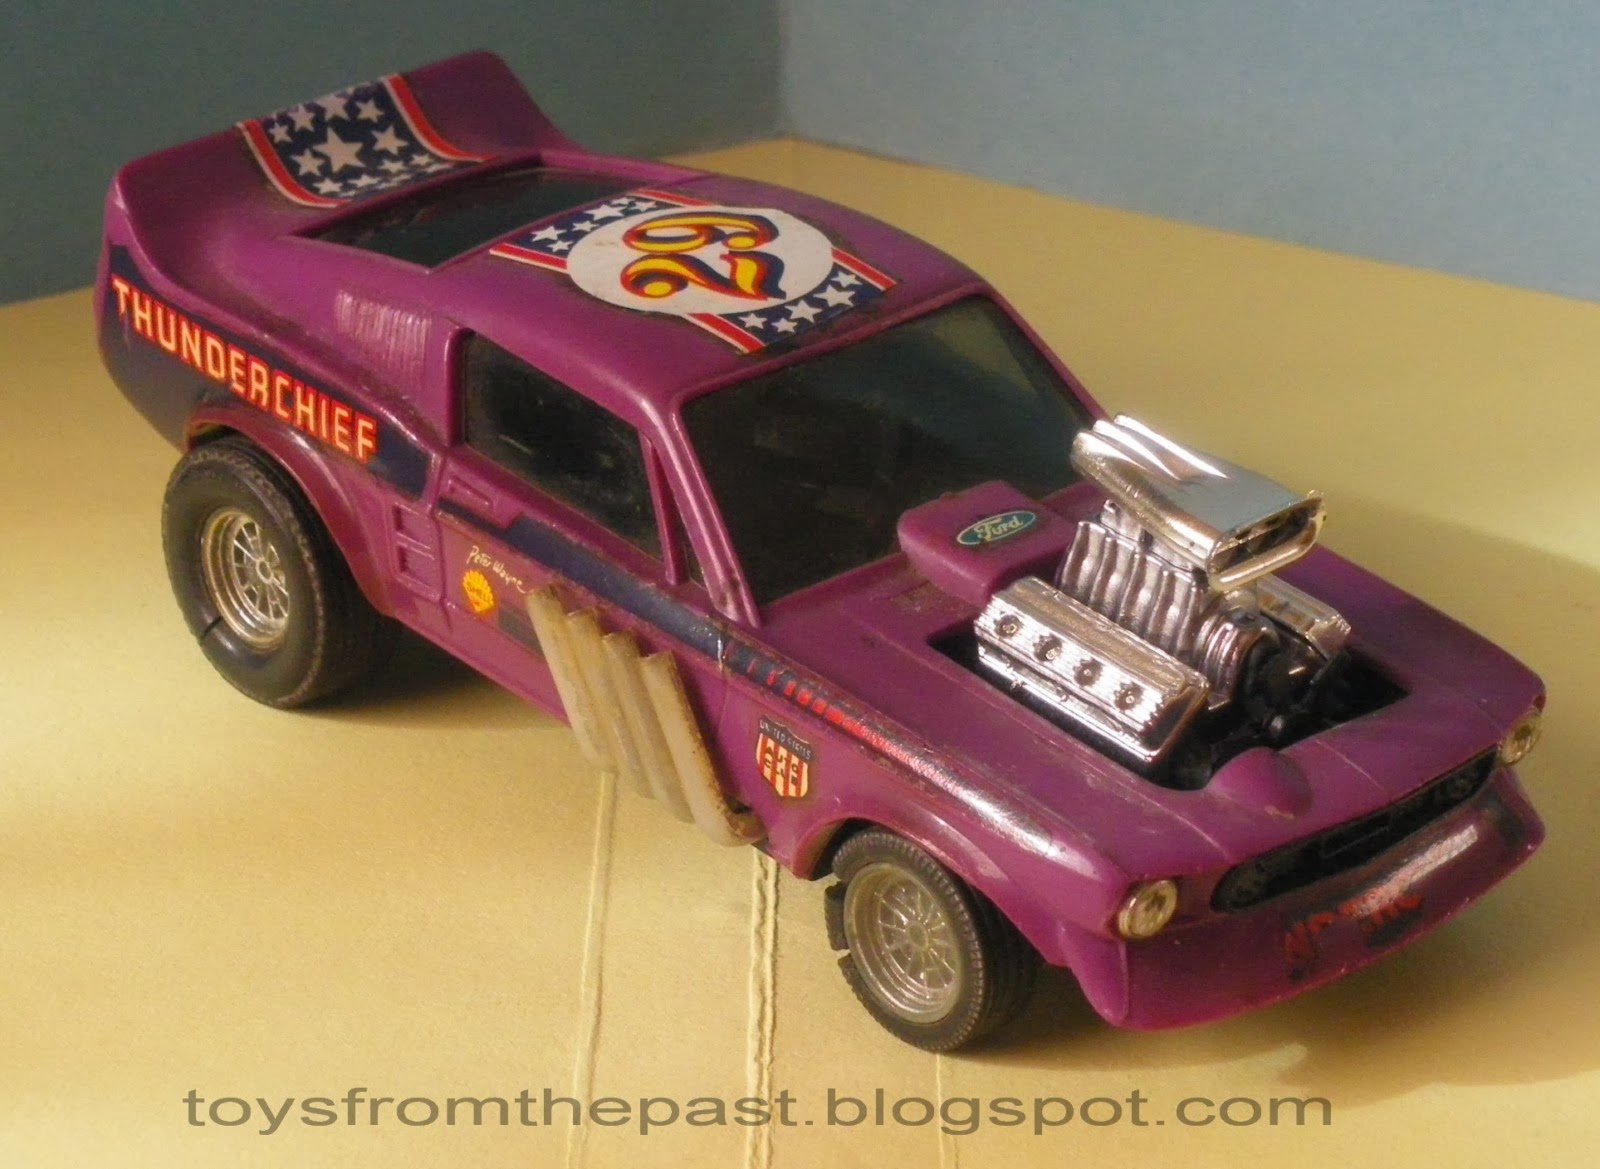 Scale Slot Drag Cars For Sale